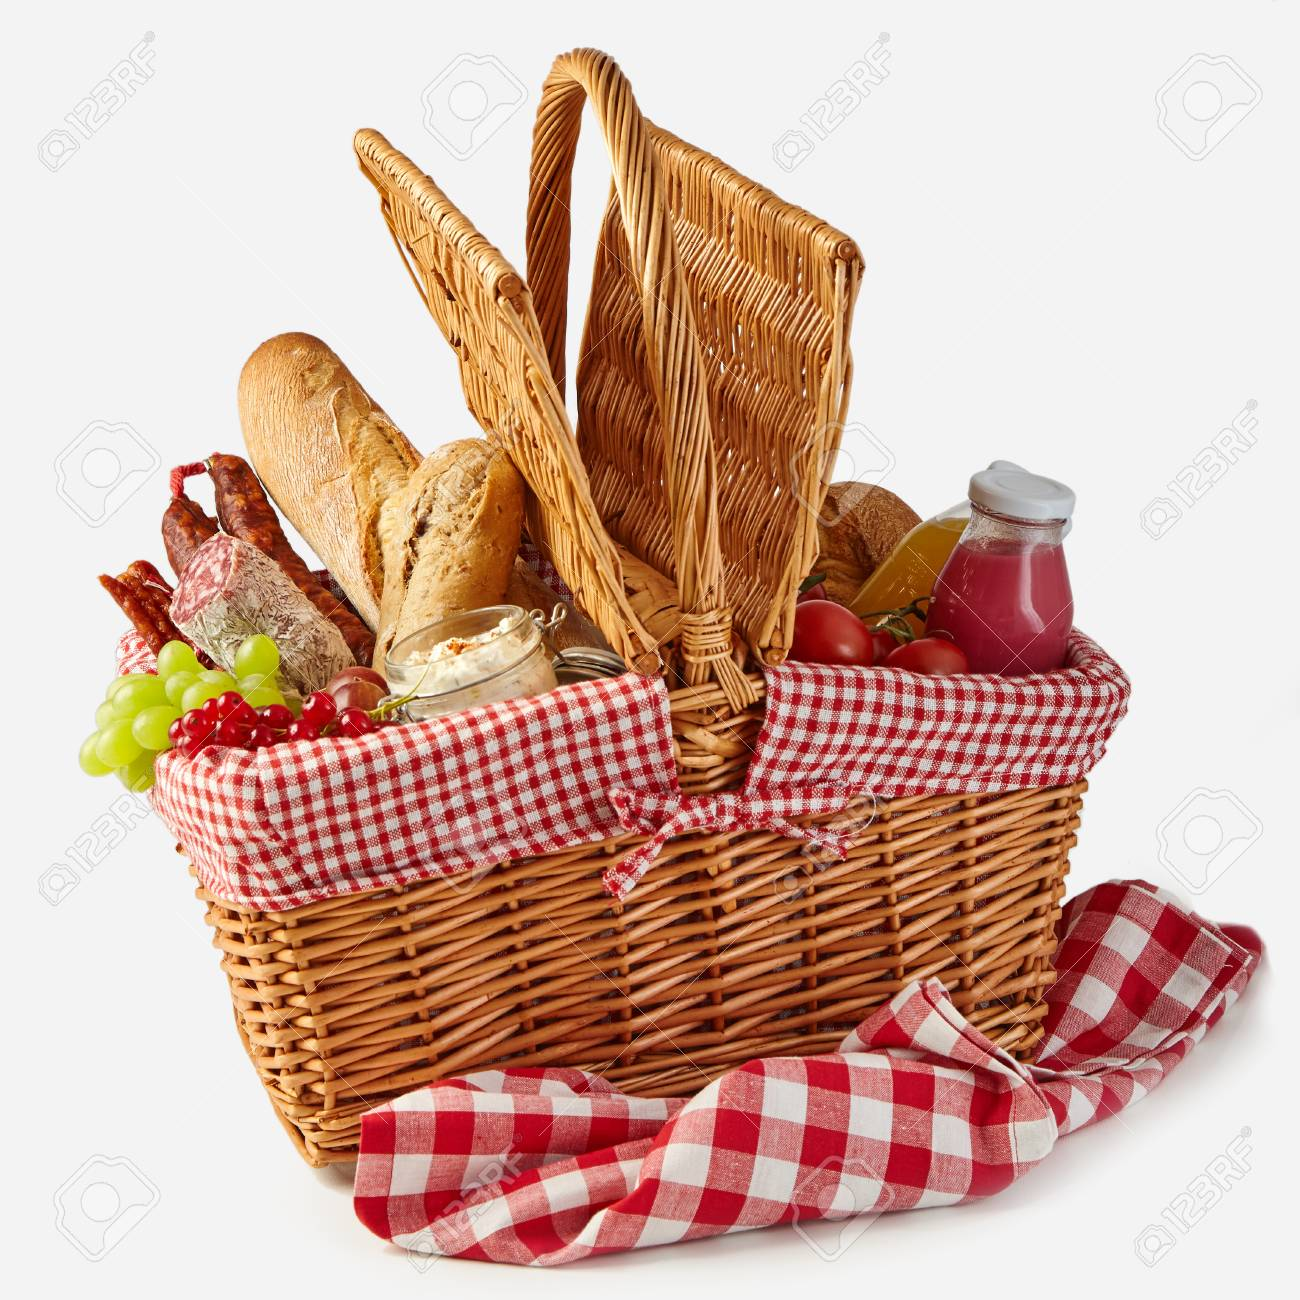 Summer picnic basket filled with food with fresh fruit and juice, spicy salami, baguettes, tomatoes and herb spread isolated on white on a rustic checked tablecloth - 104039865